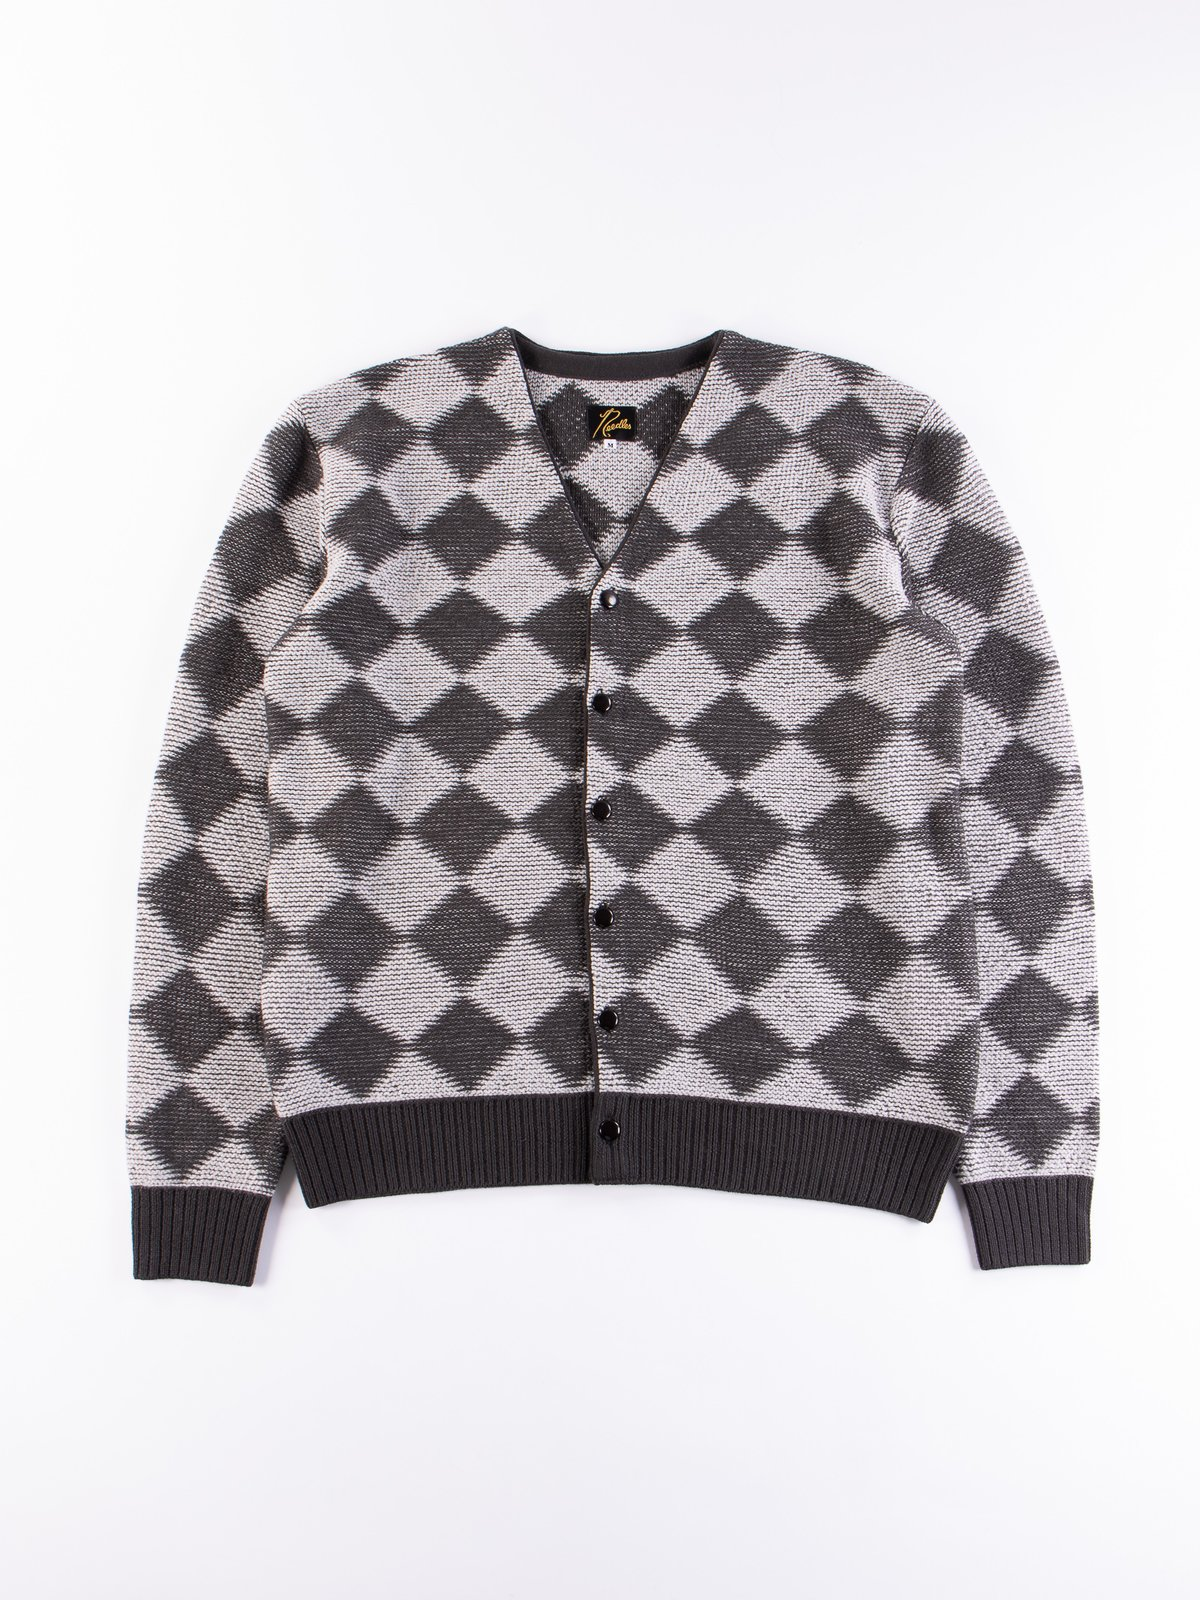 Charcoal Checkered V Neck Cardigan - Image 1